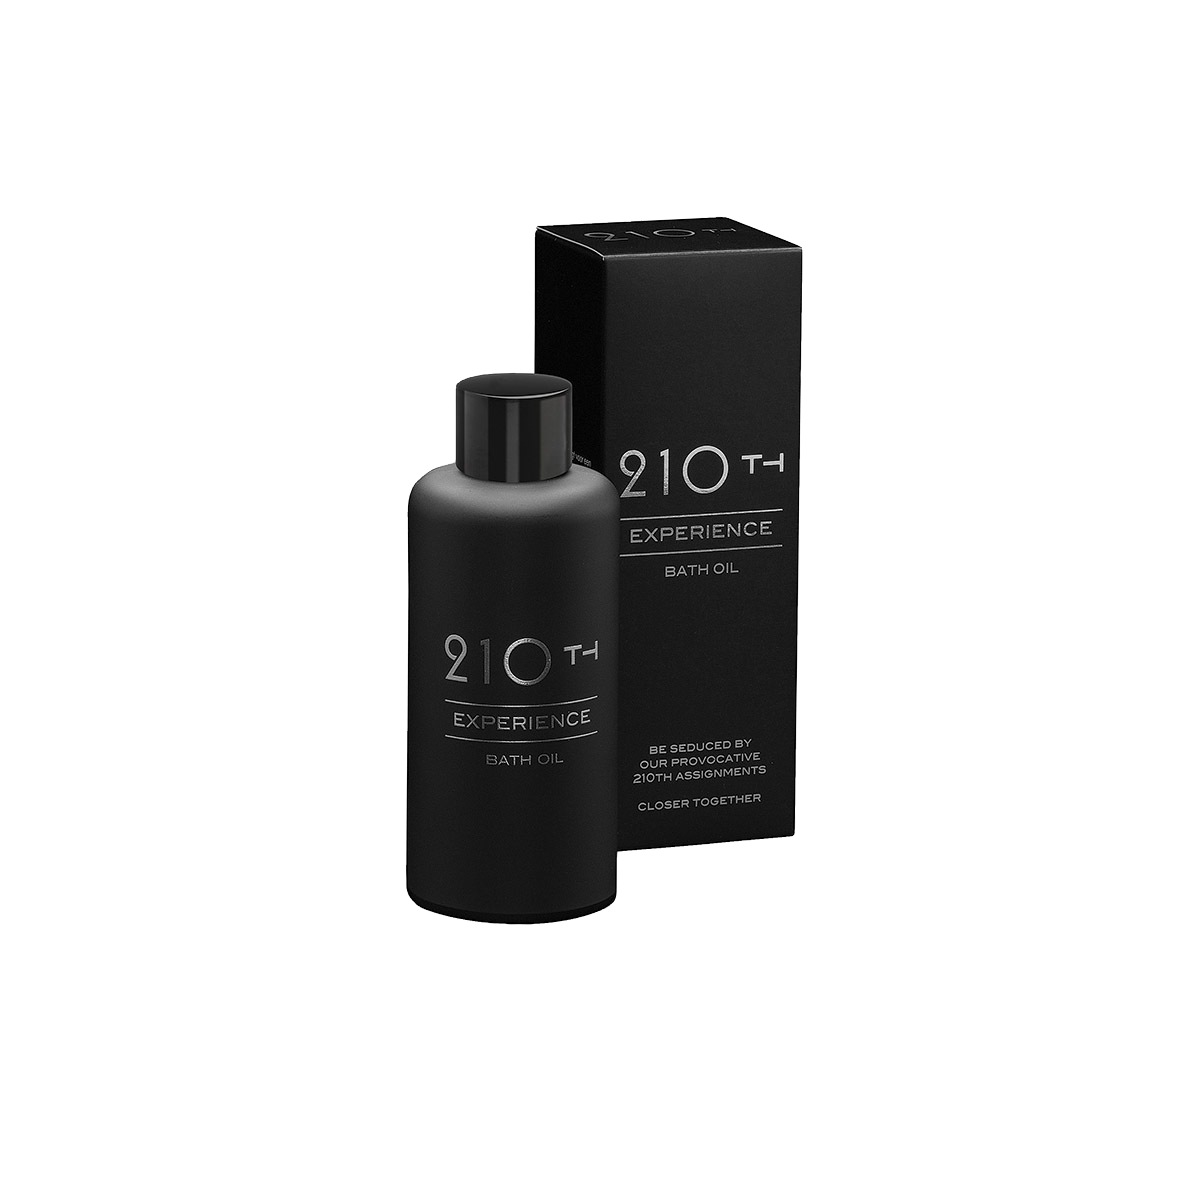 210th Bath Oil